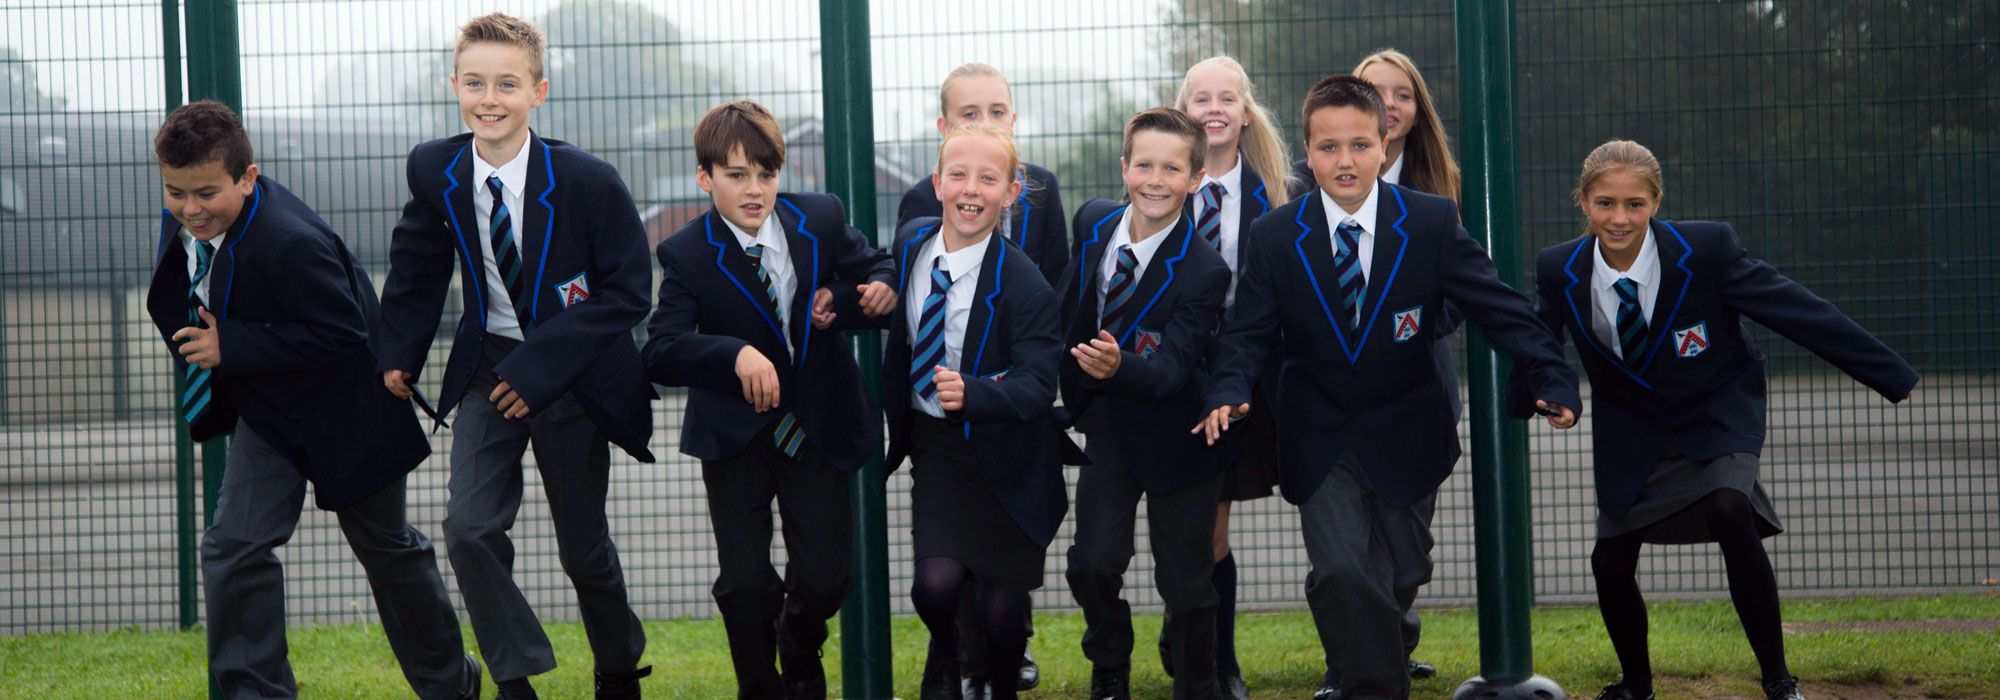 Pupils playing outdoors at The Maelor School